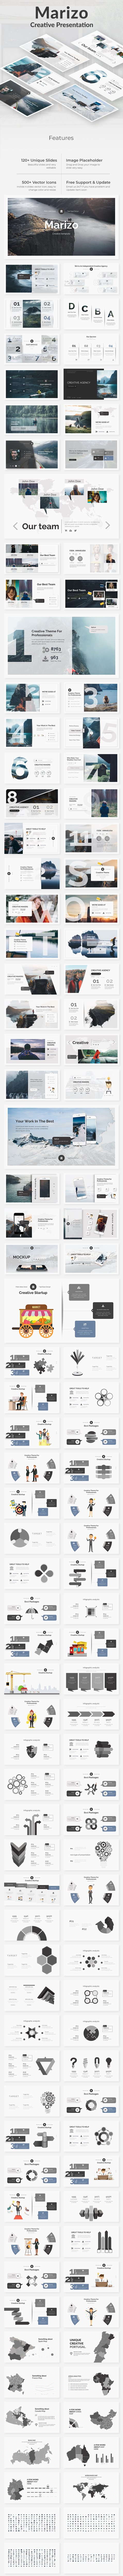 Marizo Creative Google Slide Template - Google Slides Presentation Templates